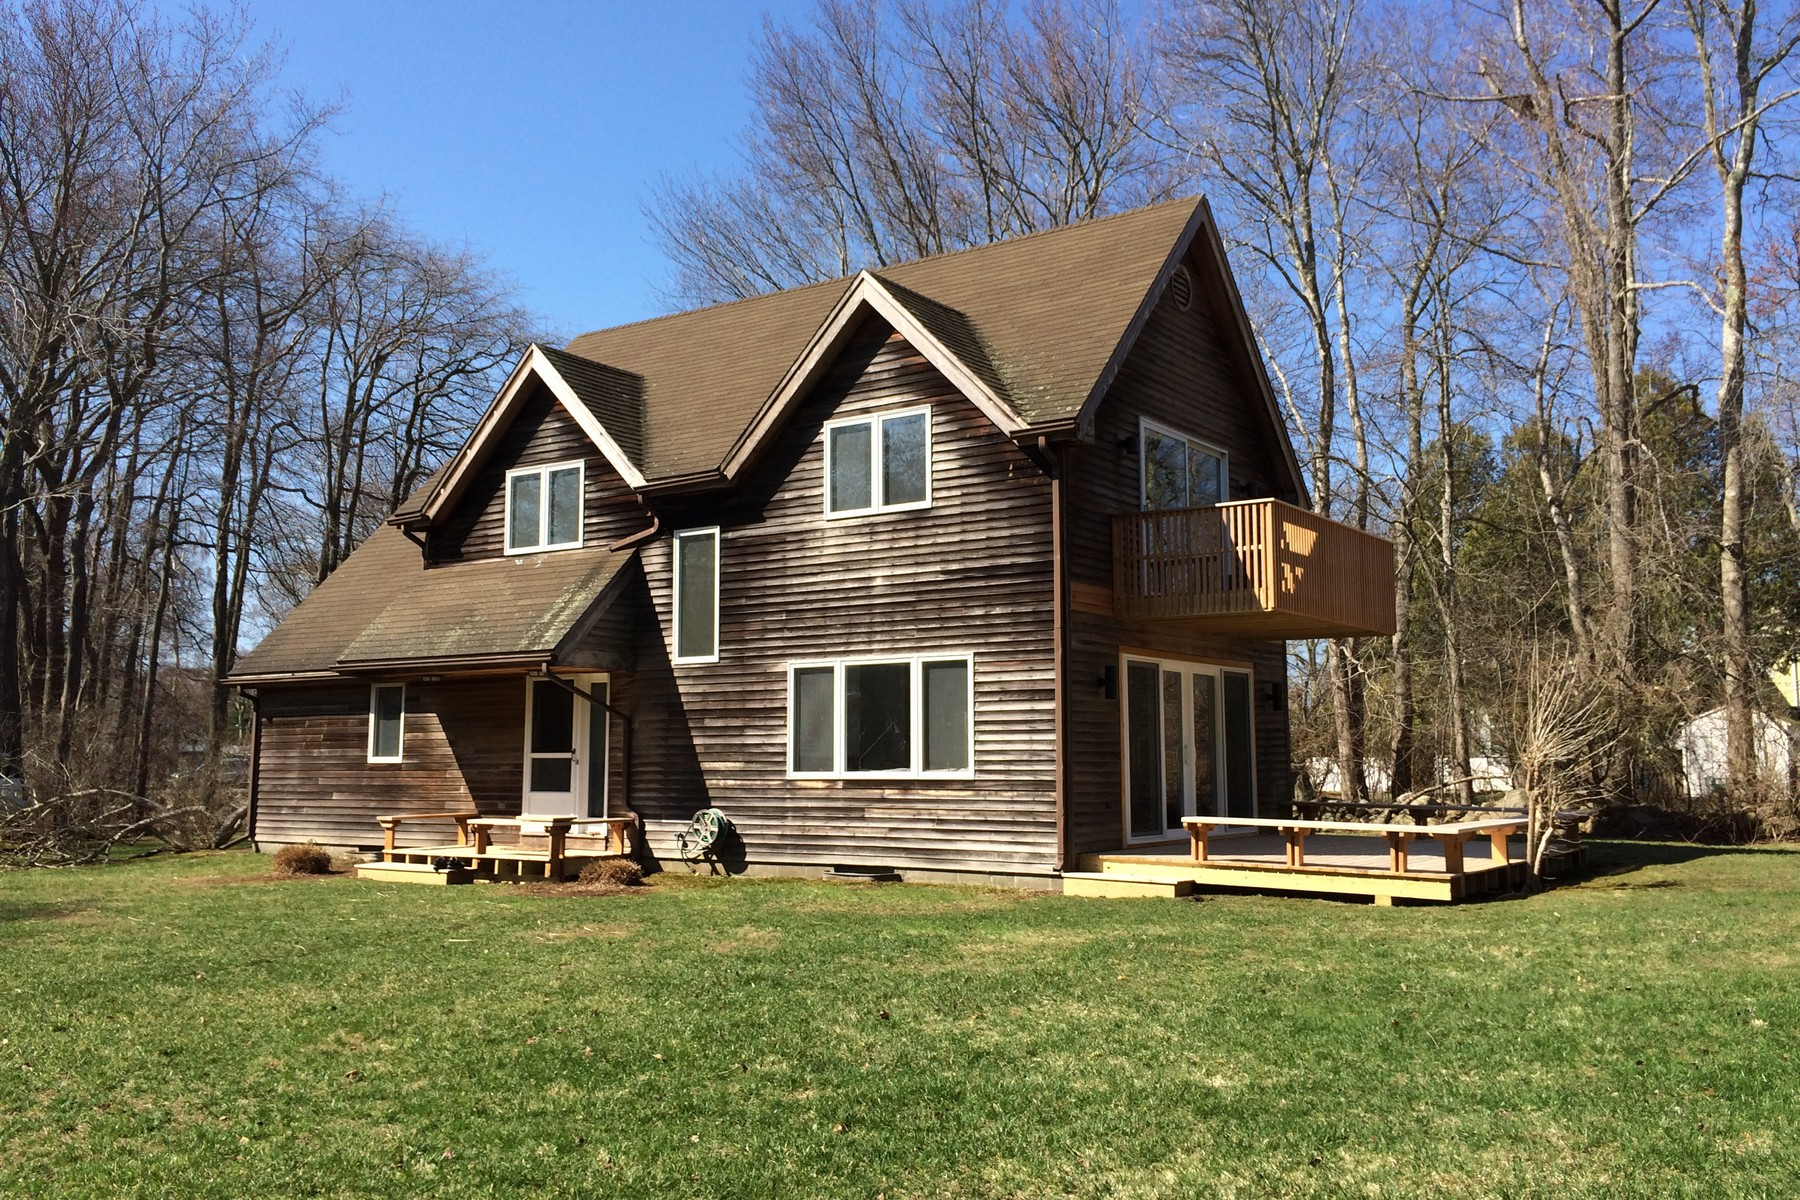 Single Family Home for Sale at In The Heart of Old Black Point 14 Francis Ln East Lyme, Connecticut 06357 United States